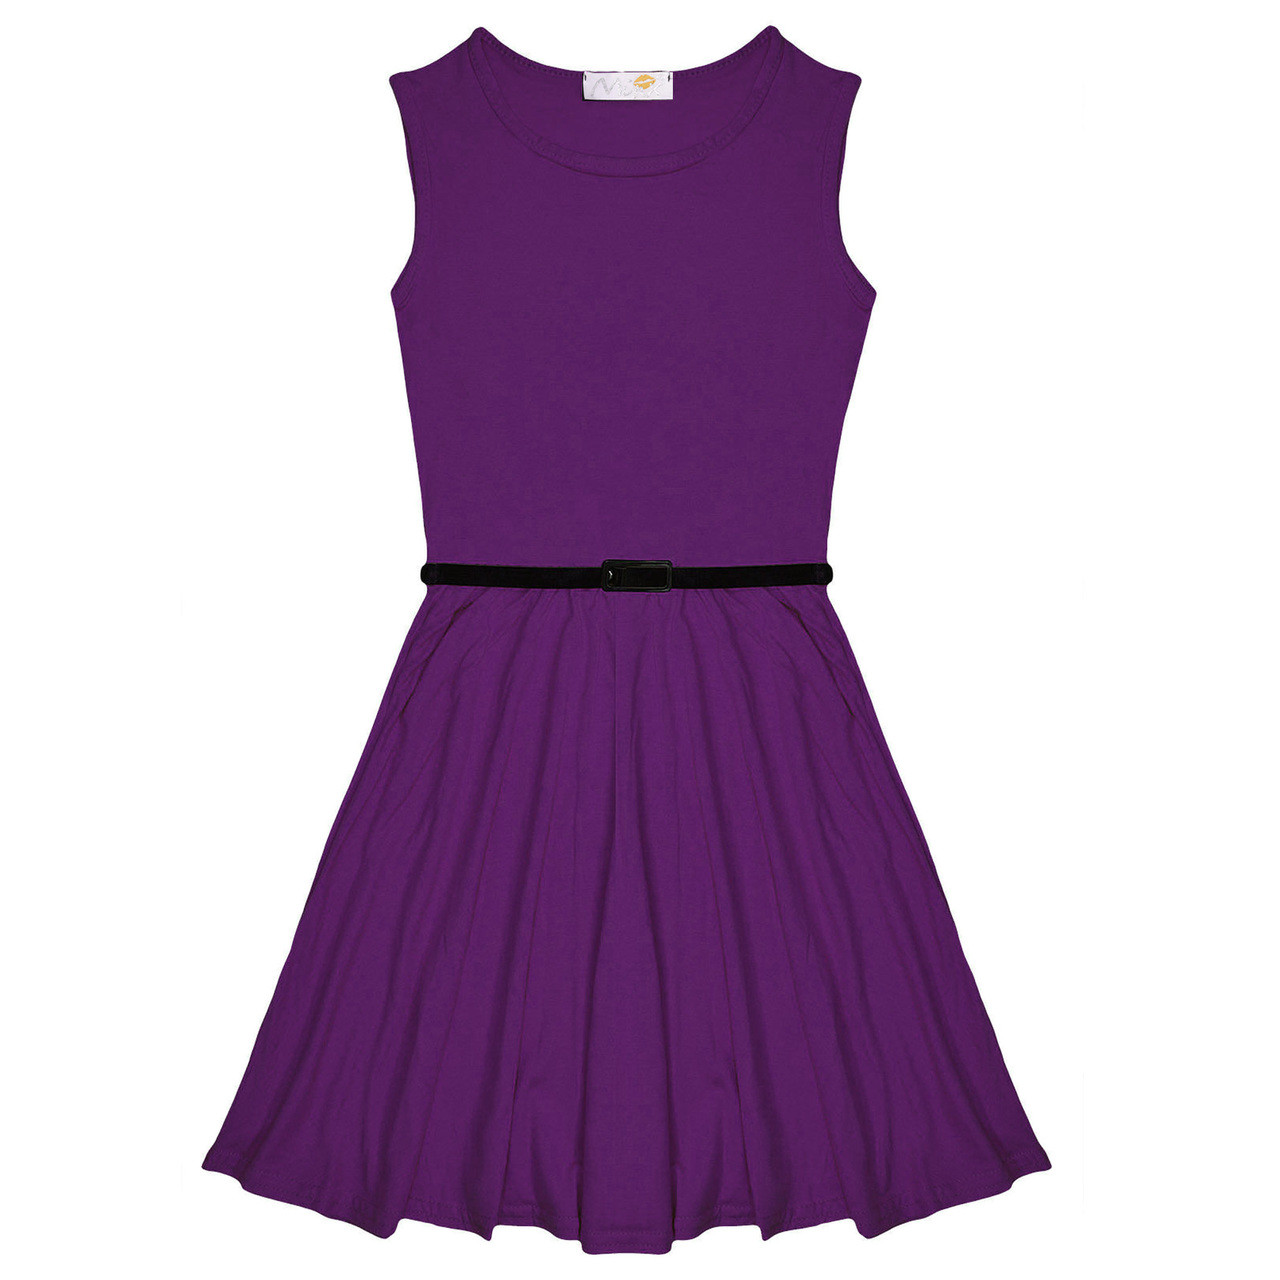 Minx Girls Plain Sleeveless Skater Dress with Free Belt ...